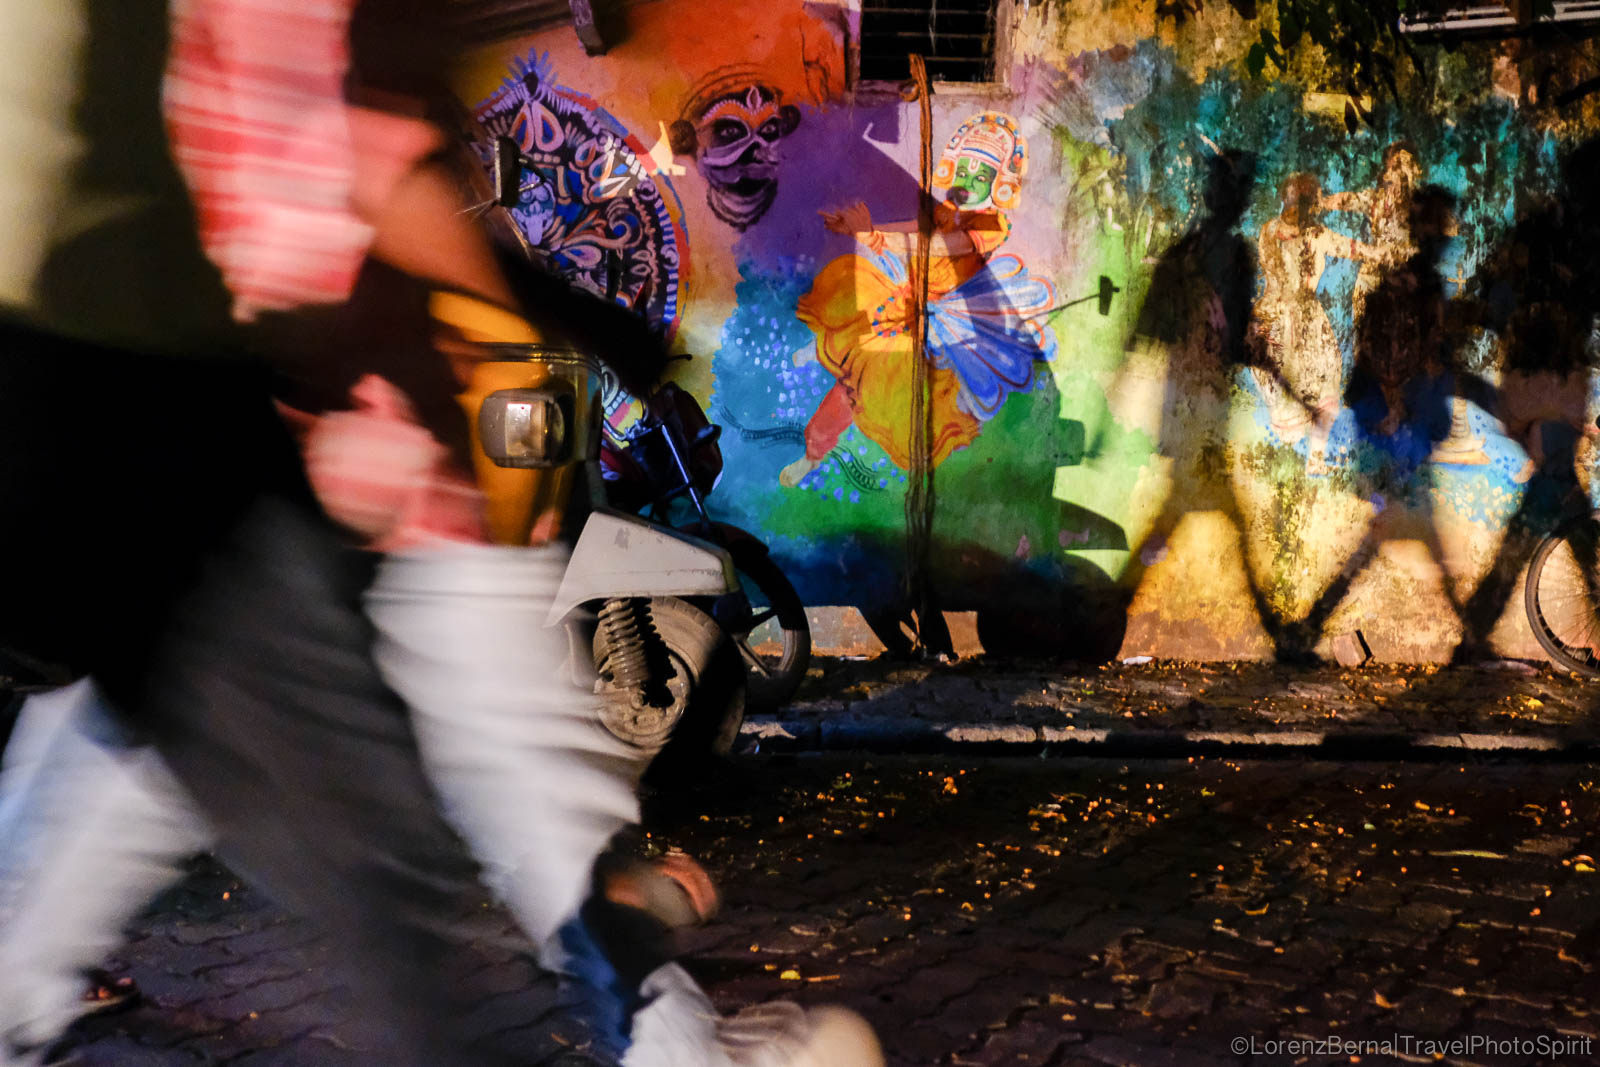 Street Photography : Shadows against a colorful wall in the night - A Lorenz Berna Photography of India